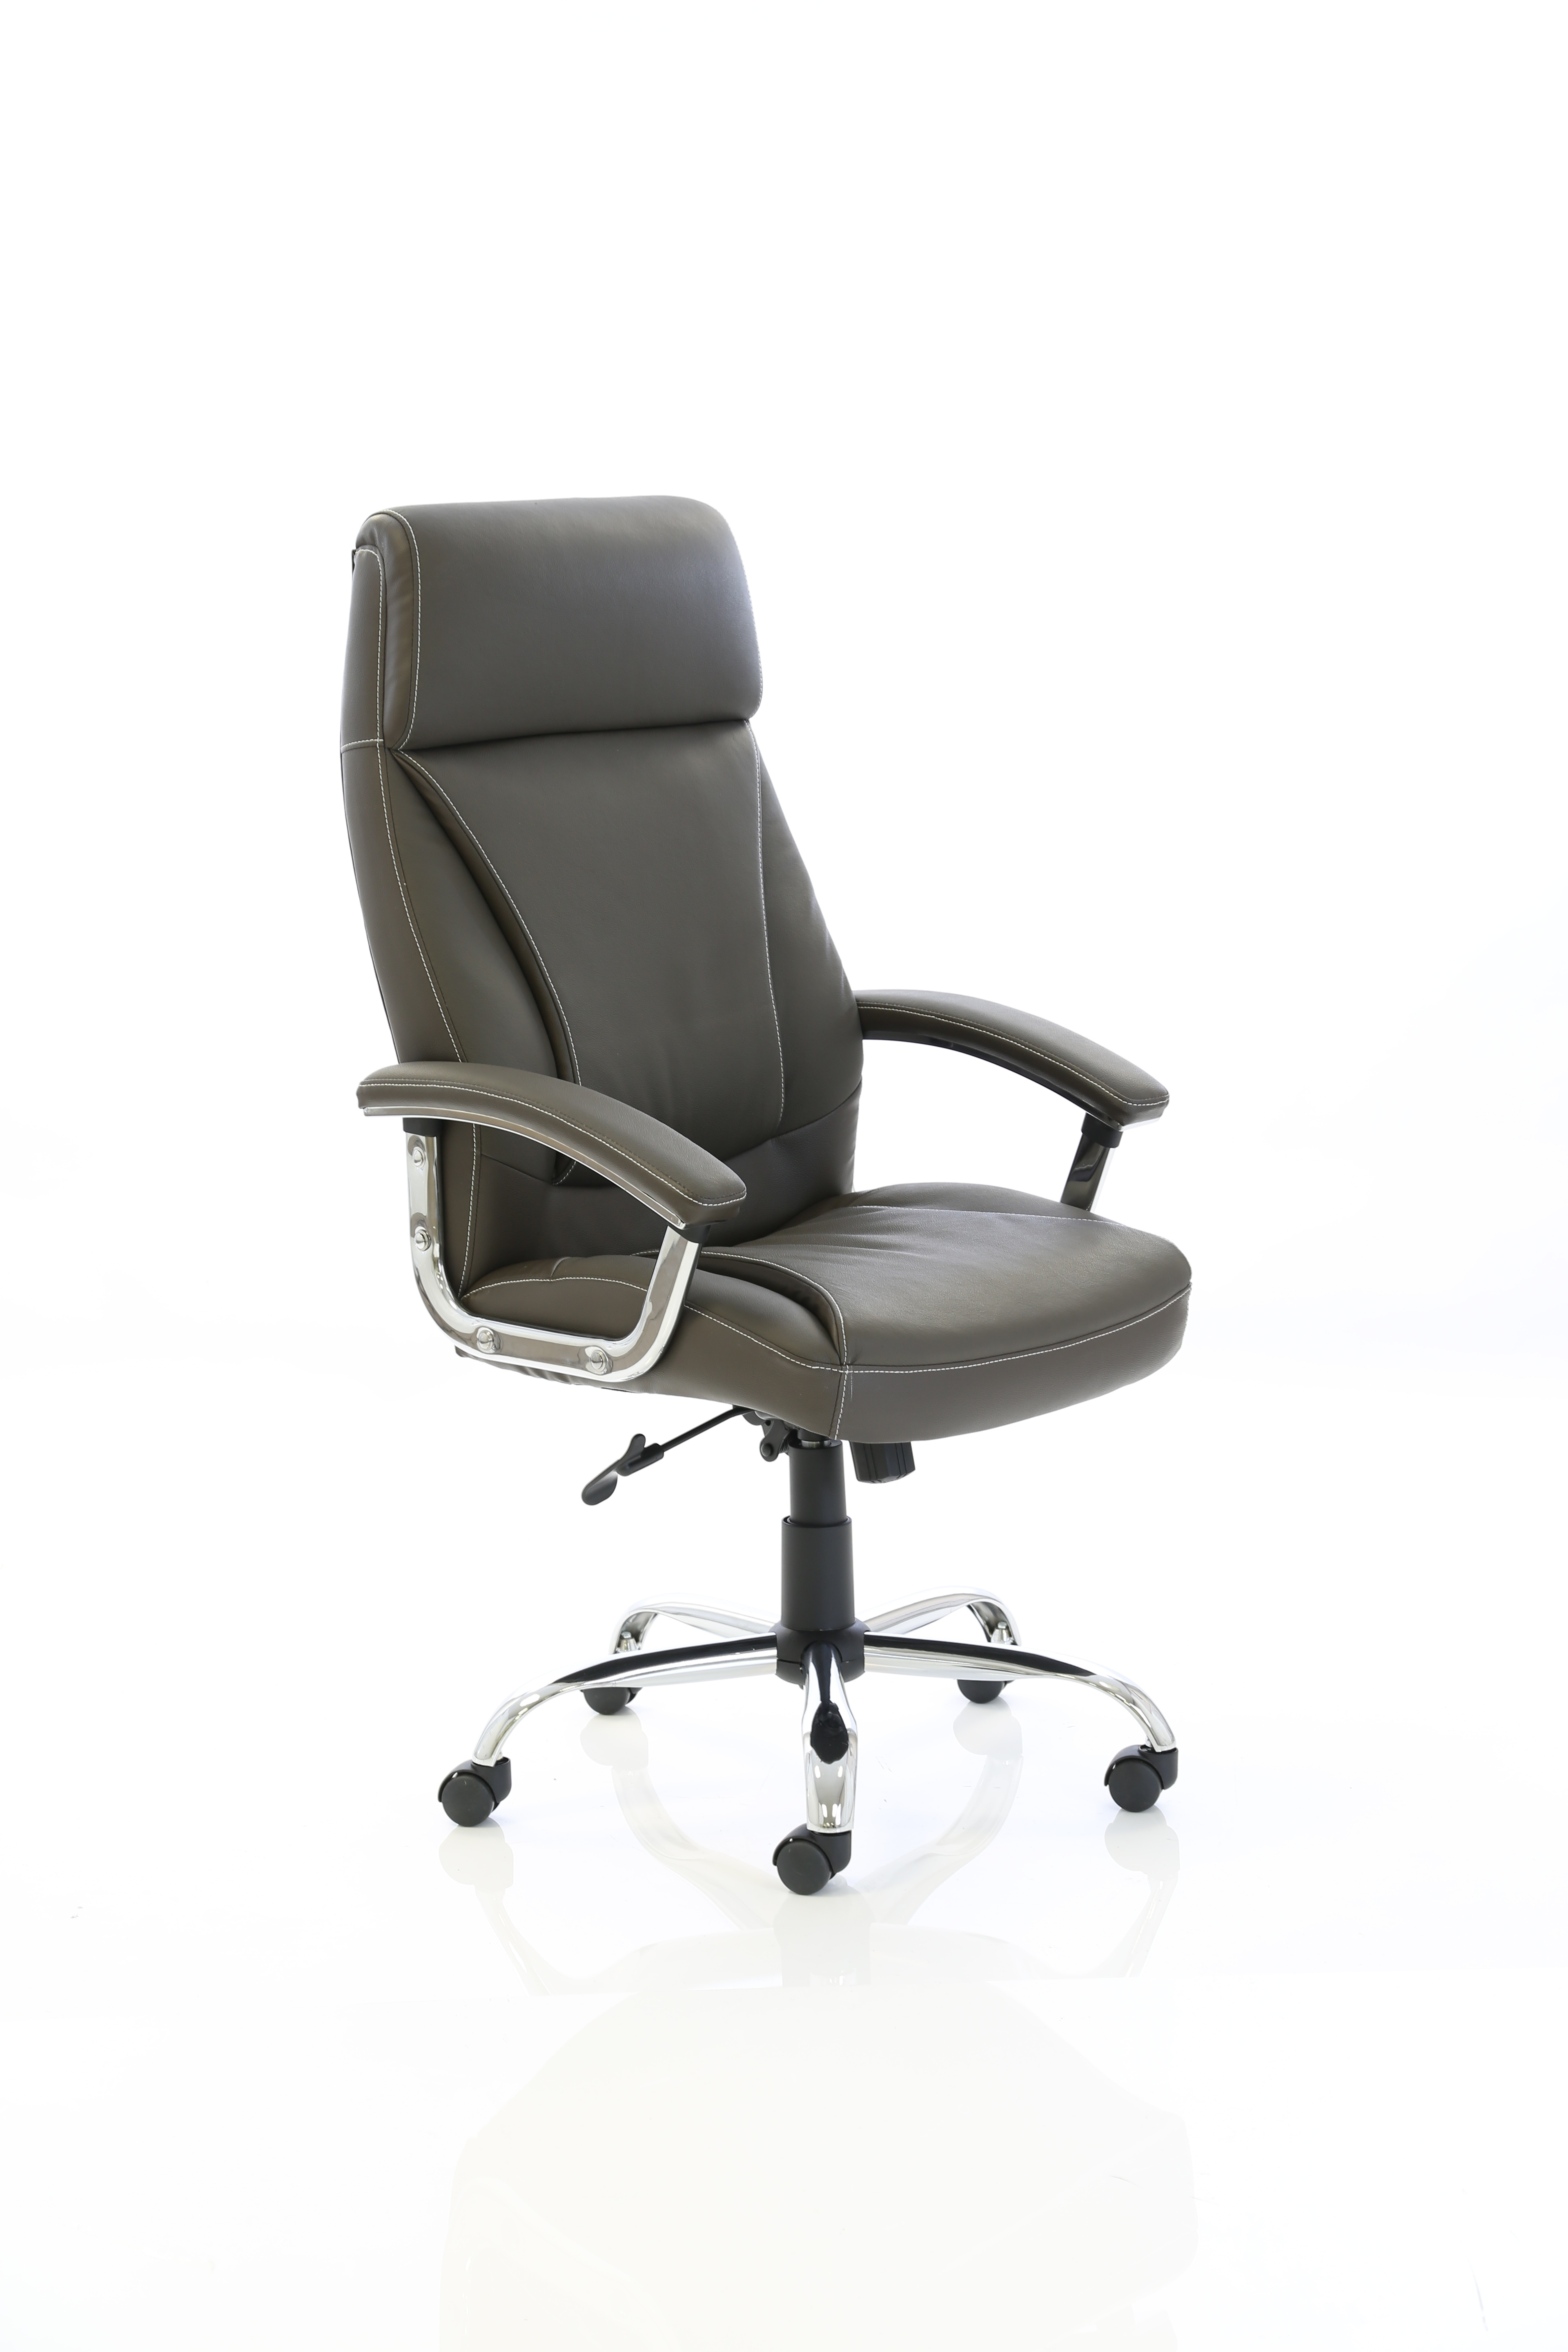 Executive Chairs Penza Executive Brown Leather Chair EX000187